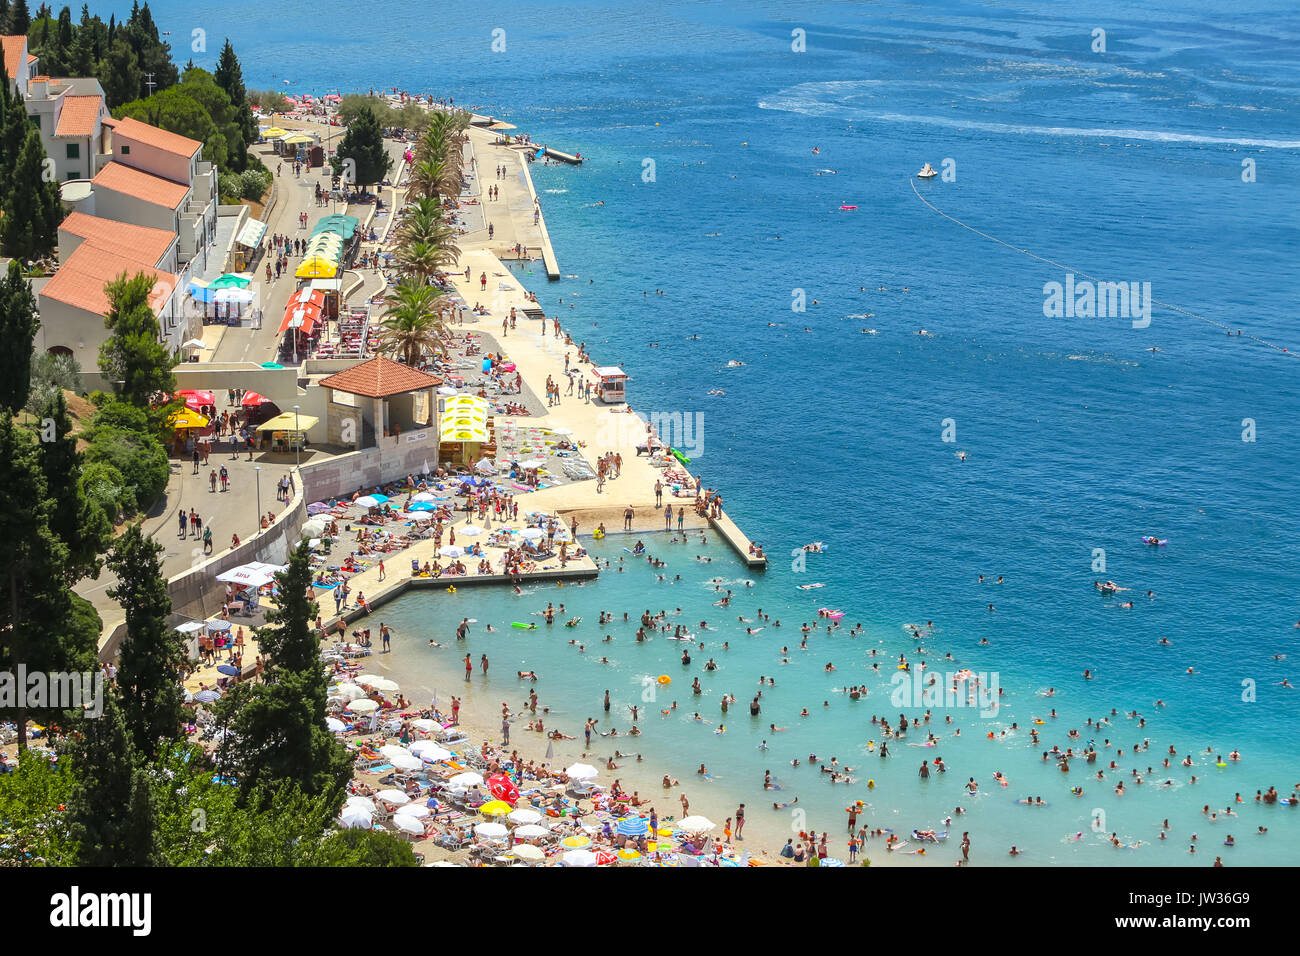 NEUM, BOSNIA AND HERZEGOVINA - JULY 16, 2017 : A view of the town waterfront and people swimming and sunbathing on the beach in Neum, Bosnia and Herze - Stock Image